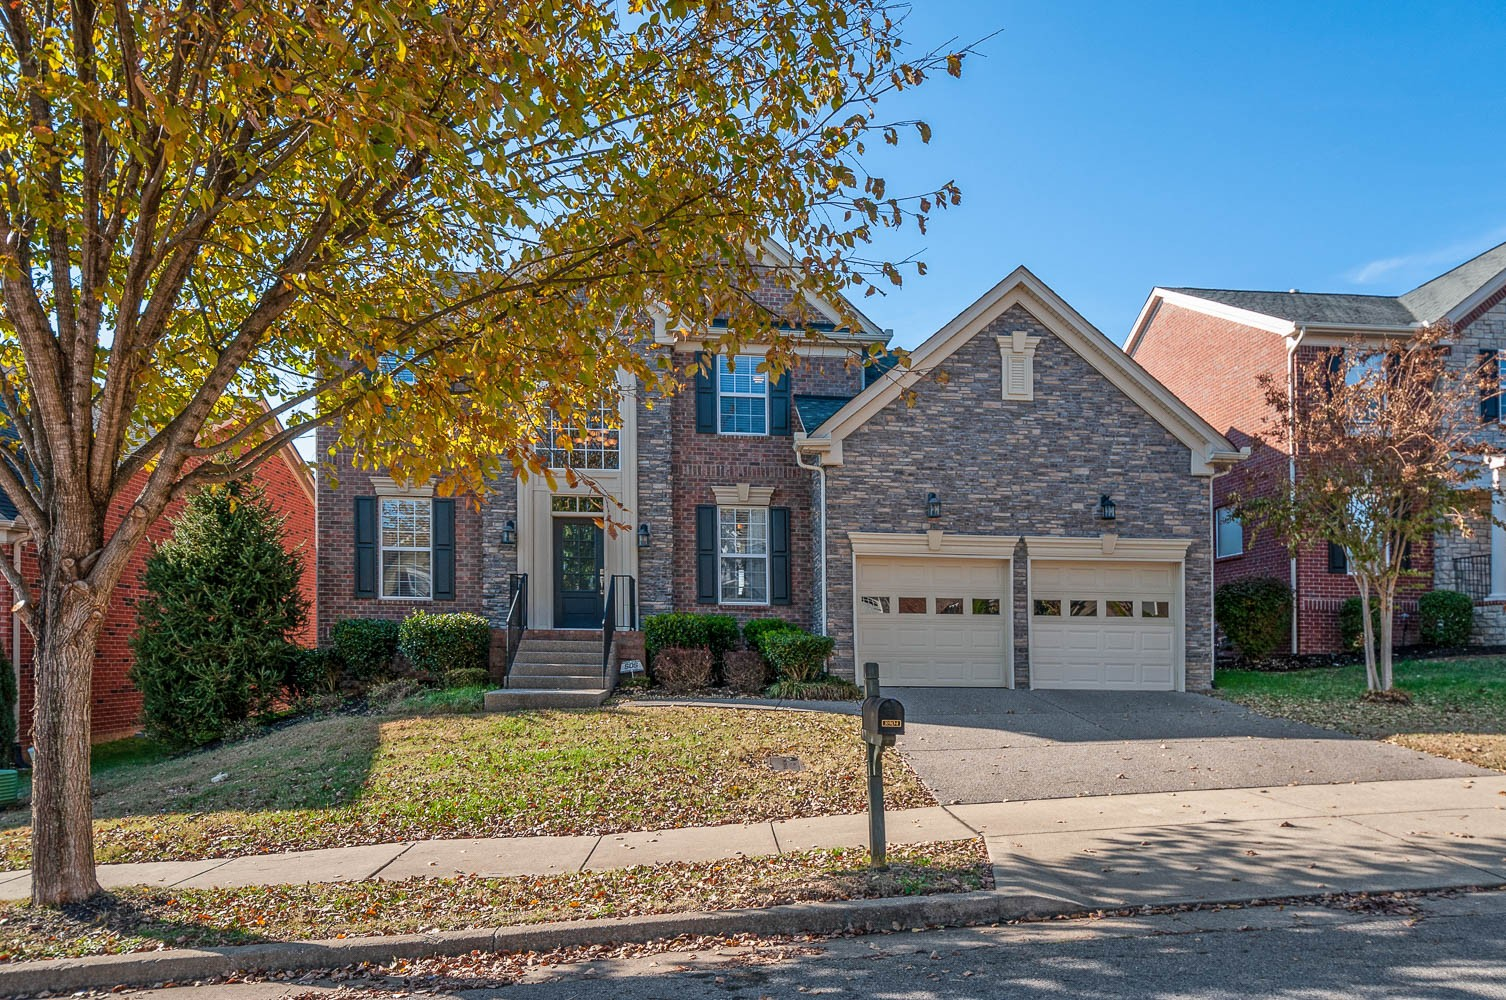 8904 Macauley Ln, Nolensville, TN 37135 - Nolensville, TN real estate listing